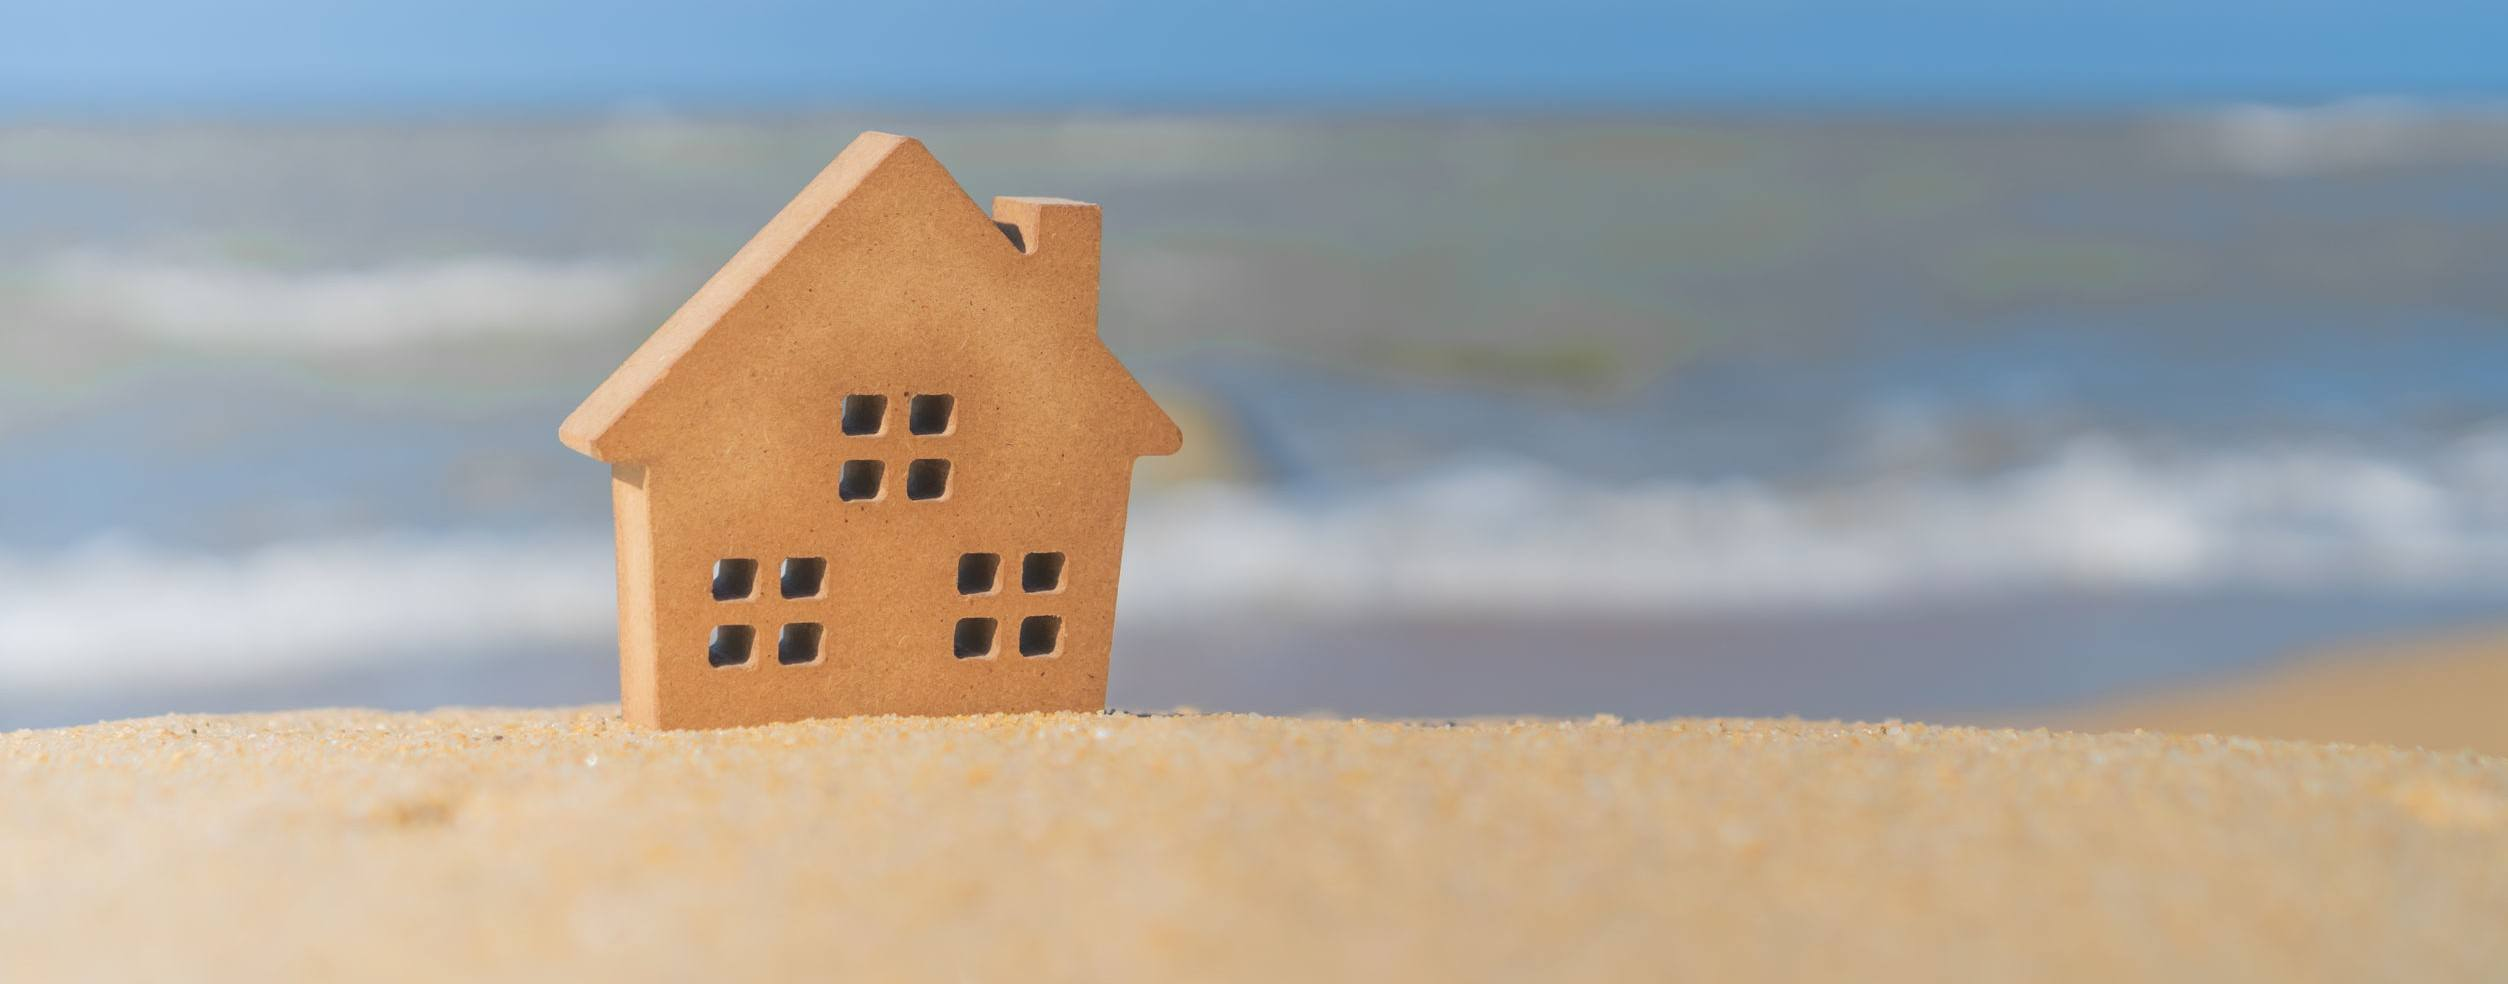 Closed up tiny home models on sand with sunlight and beach.